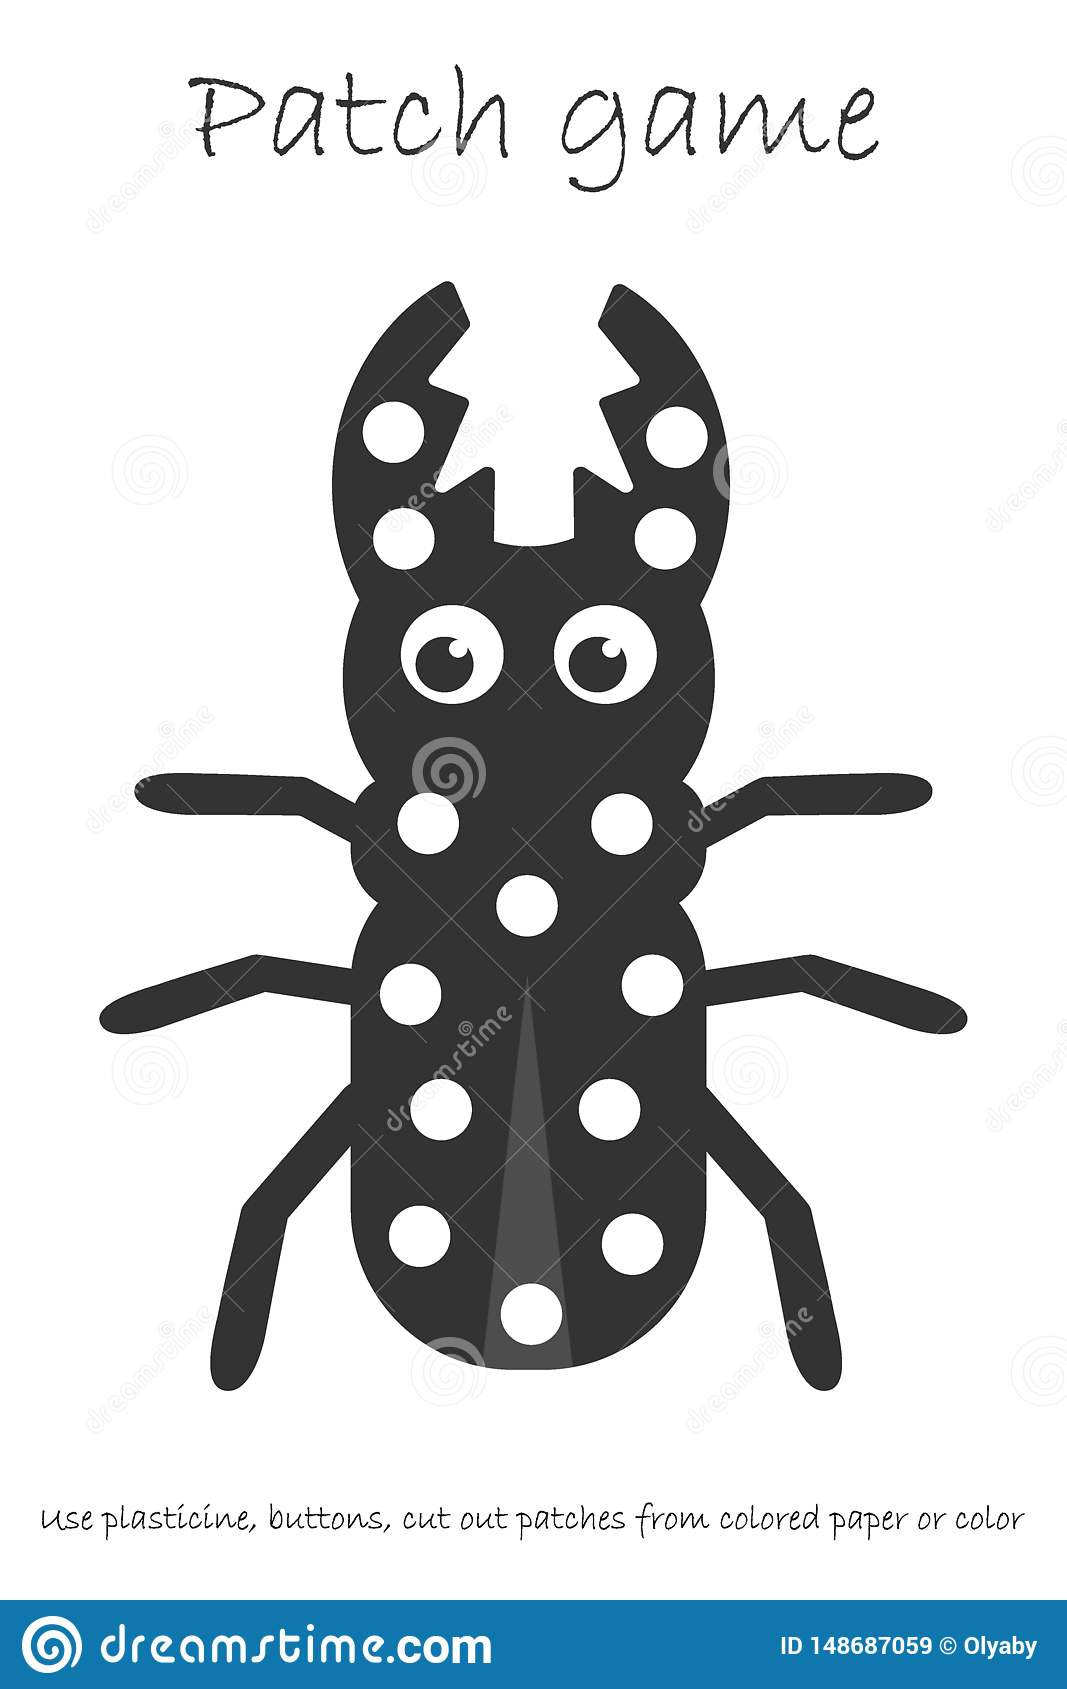 Education Patch Game Beetle For Children To Develop Motor